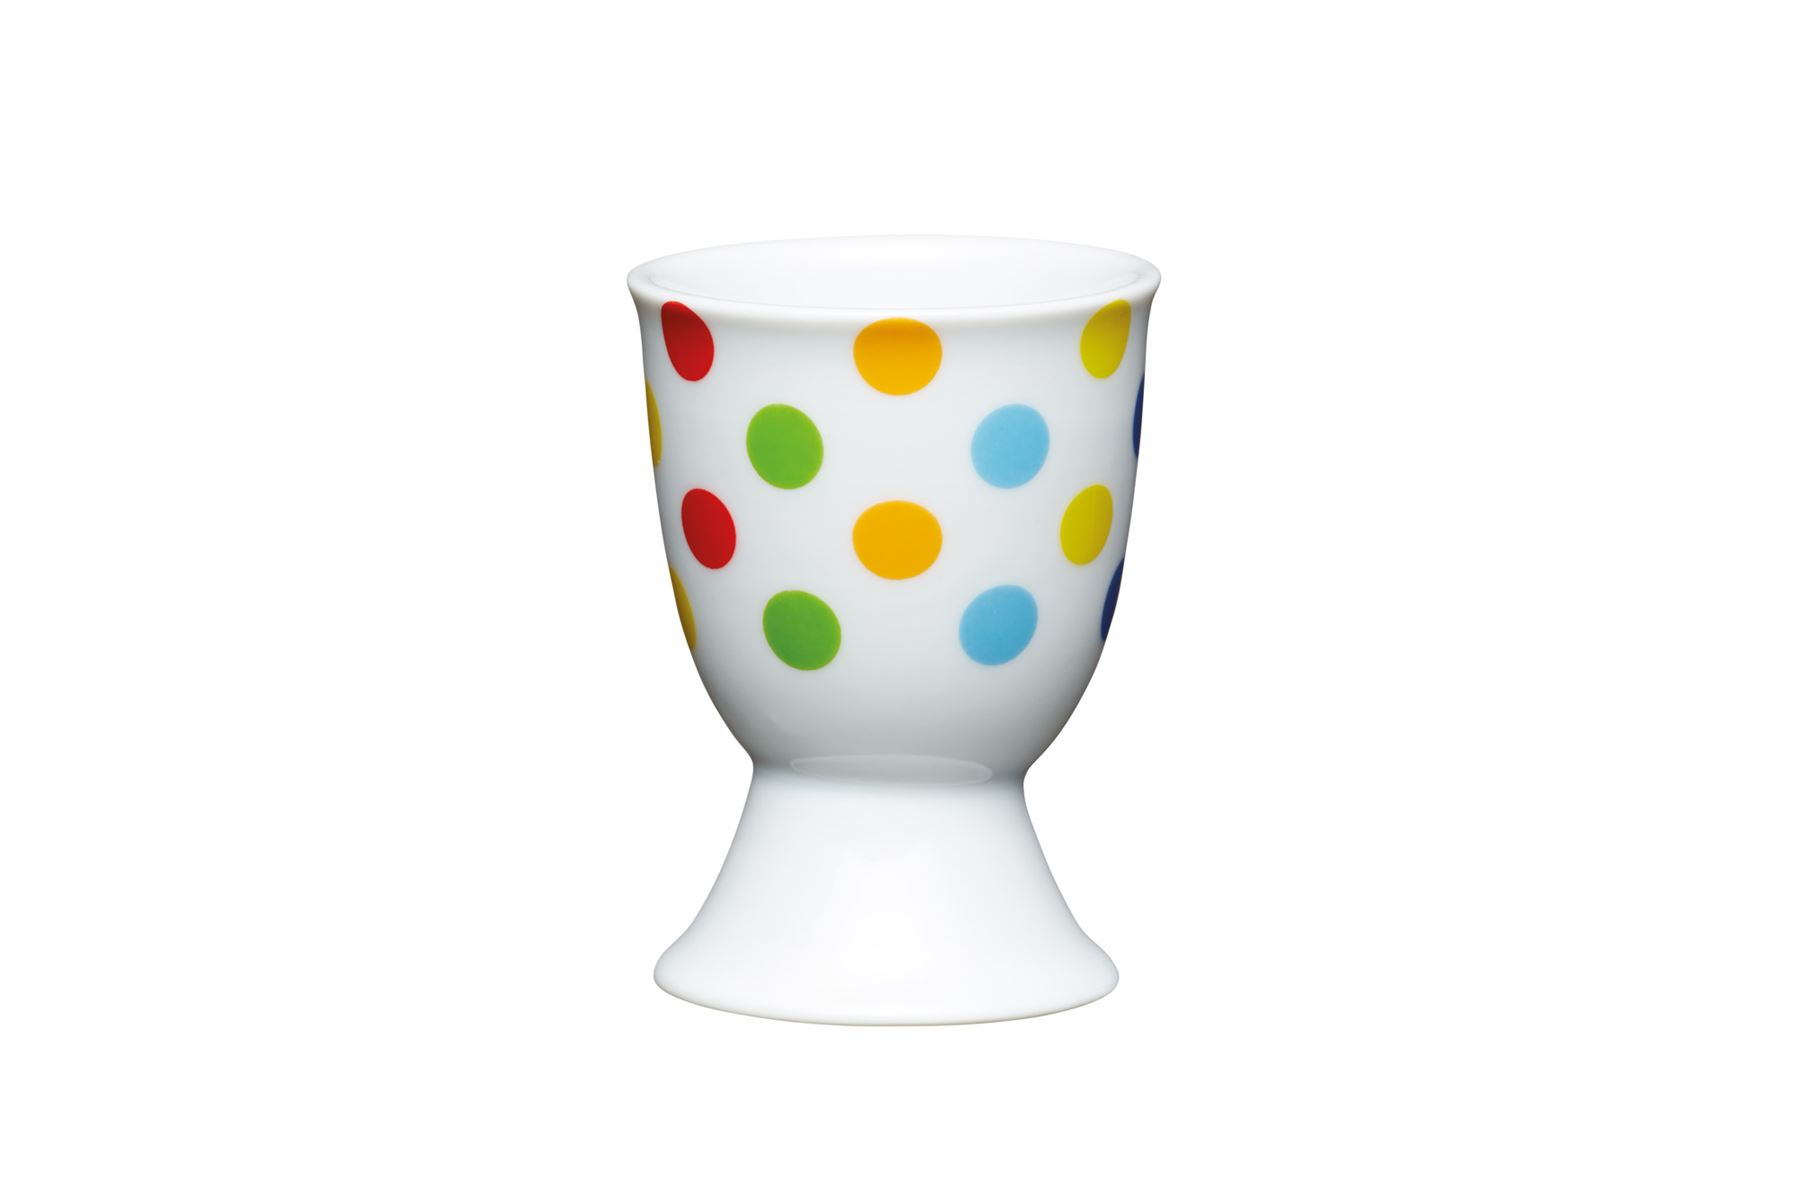 KitchenCraft Classic Collection Ceramic Double Egg Cup in Cream